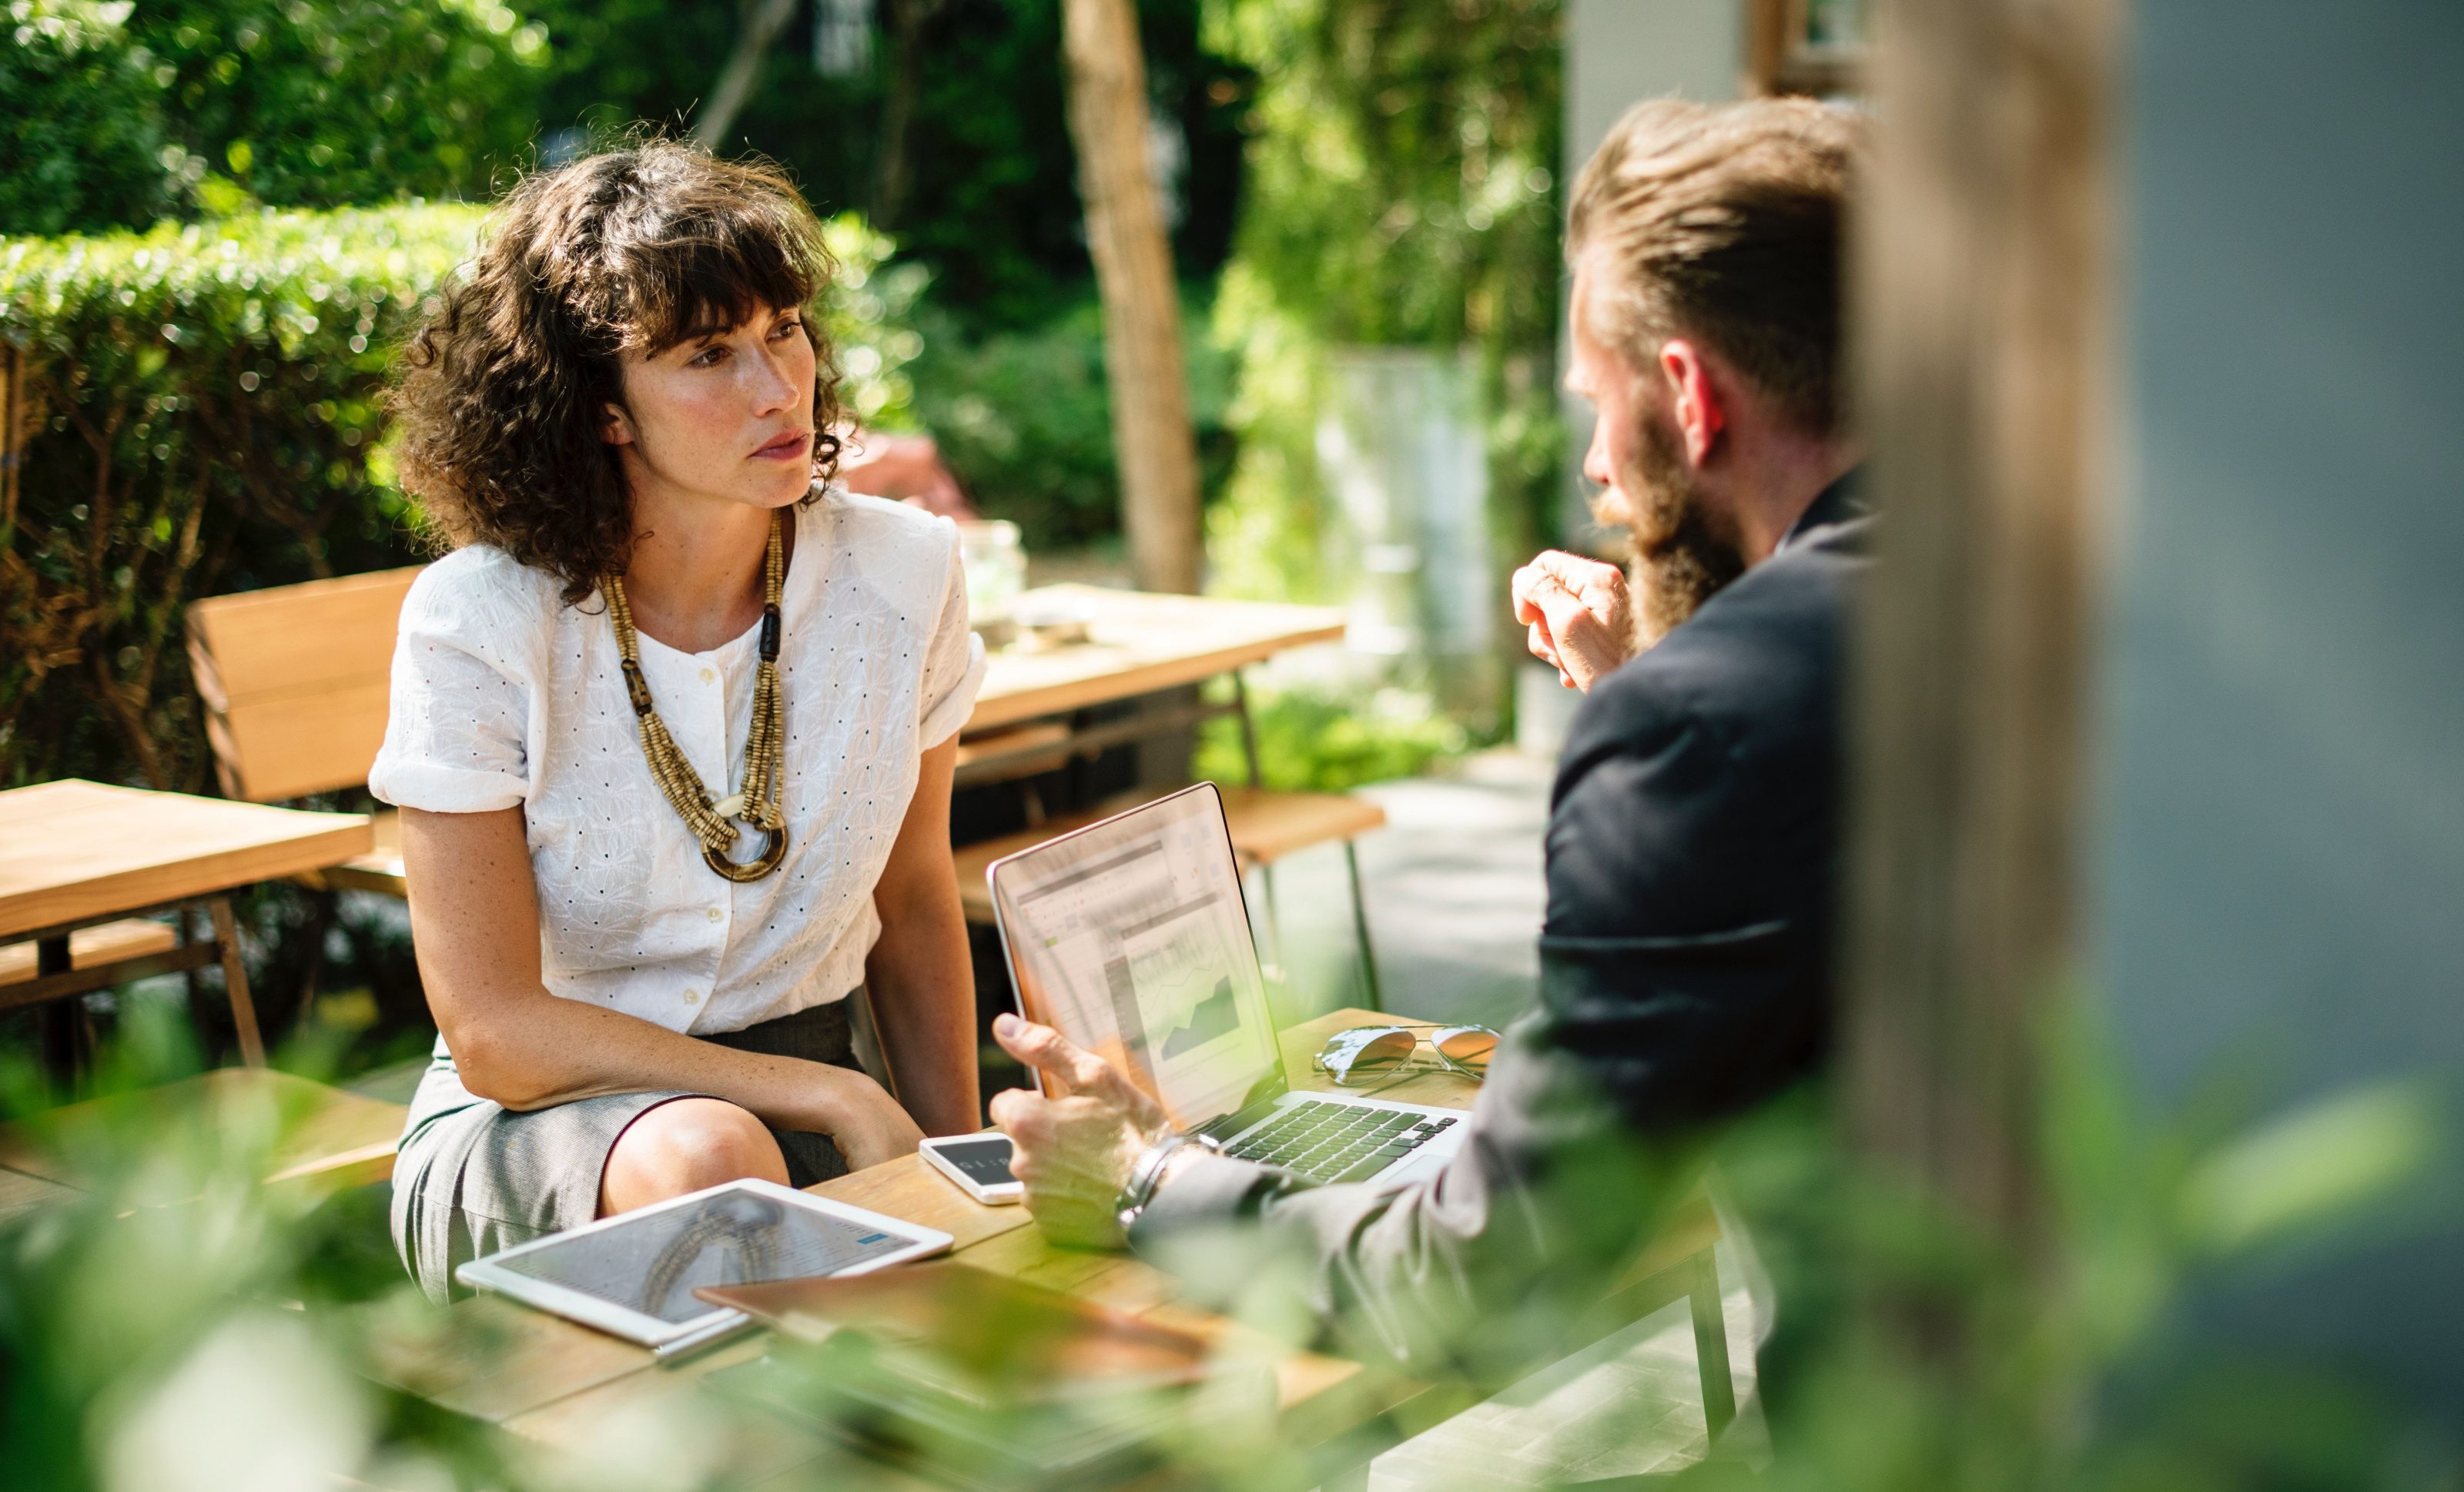 A psychologist's trick to being more likable on dates and job interviews